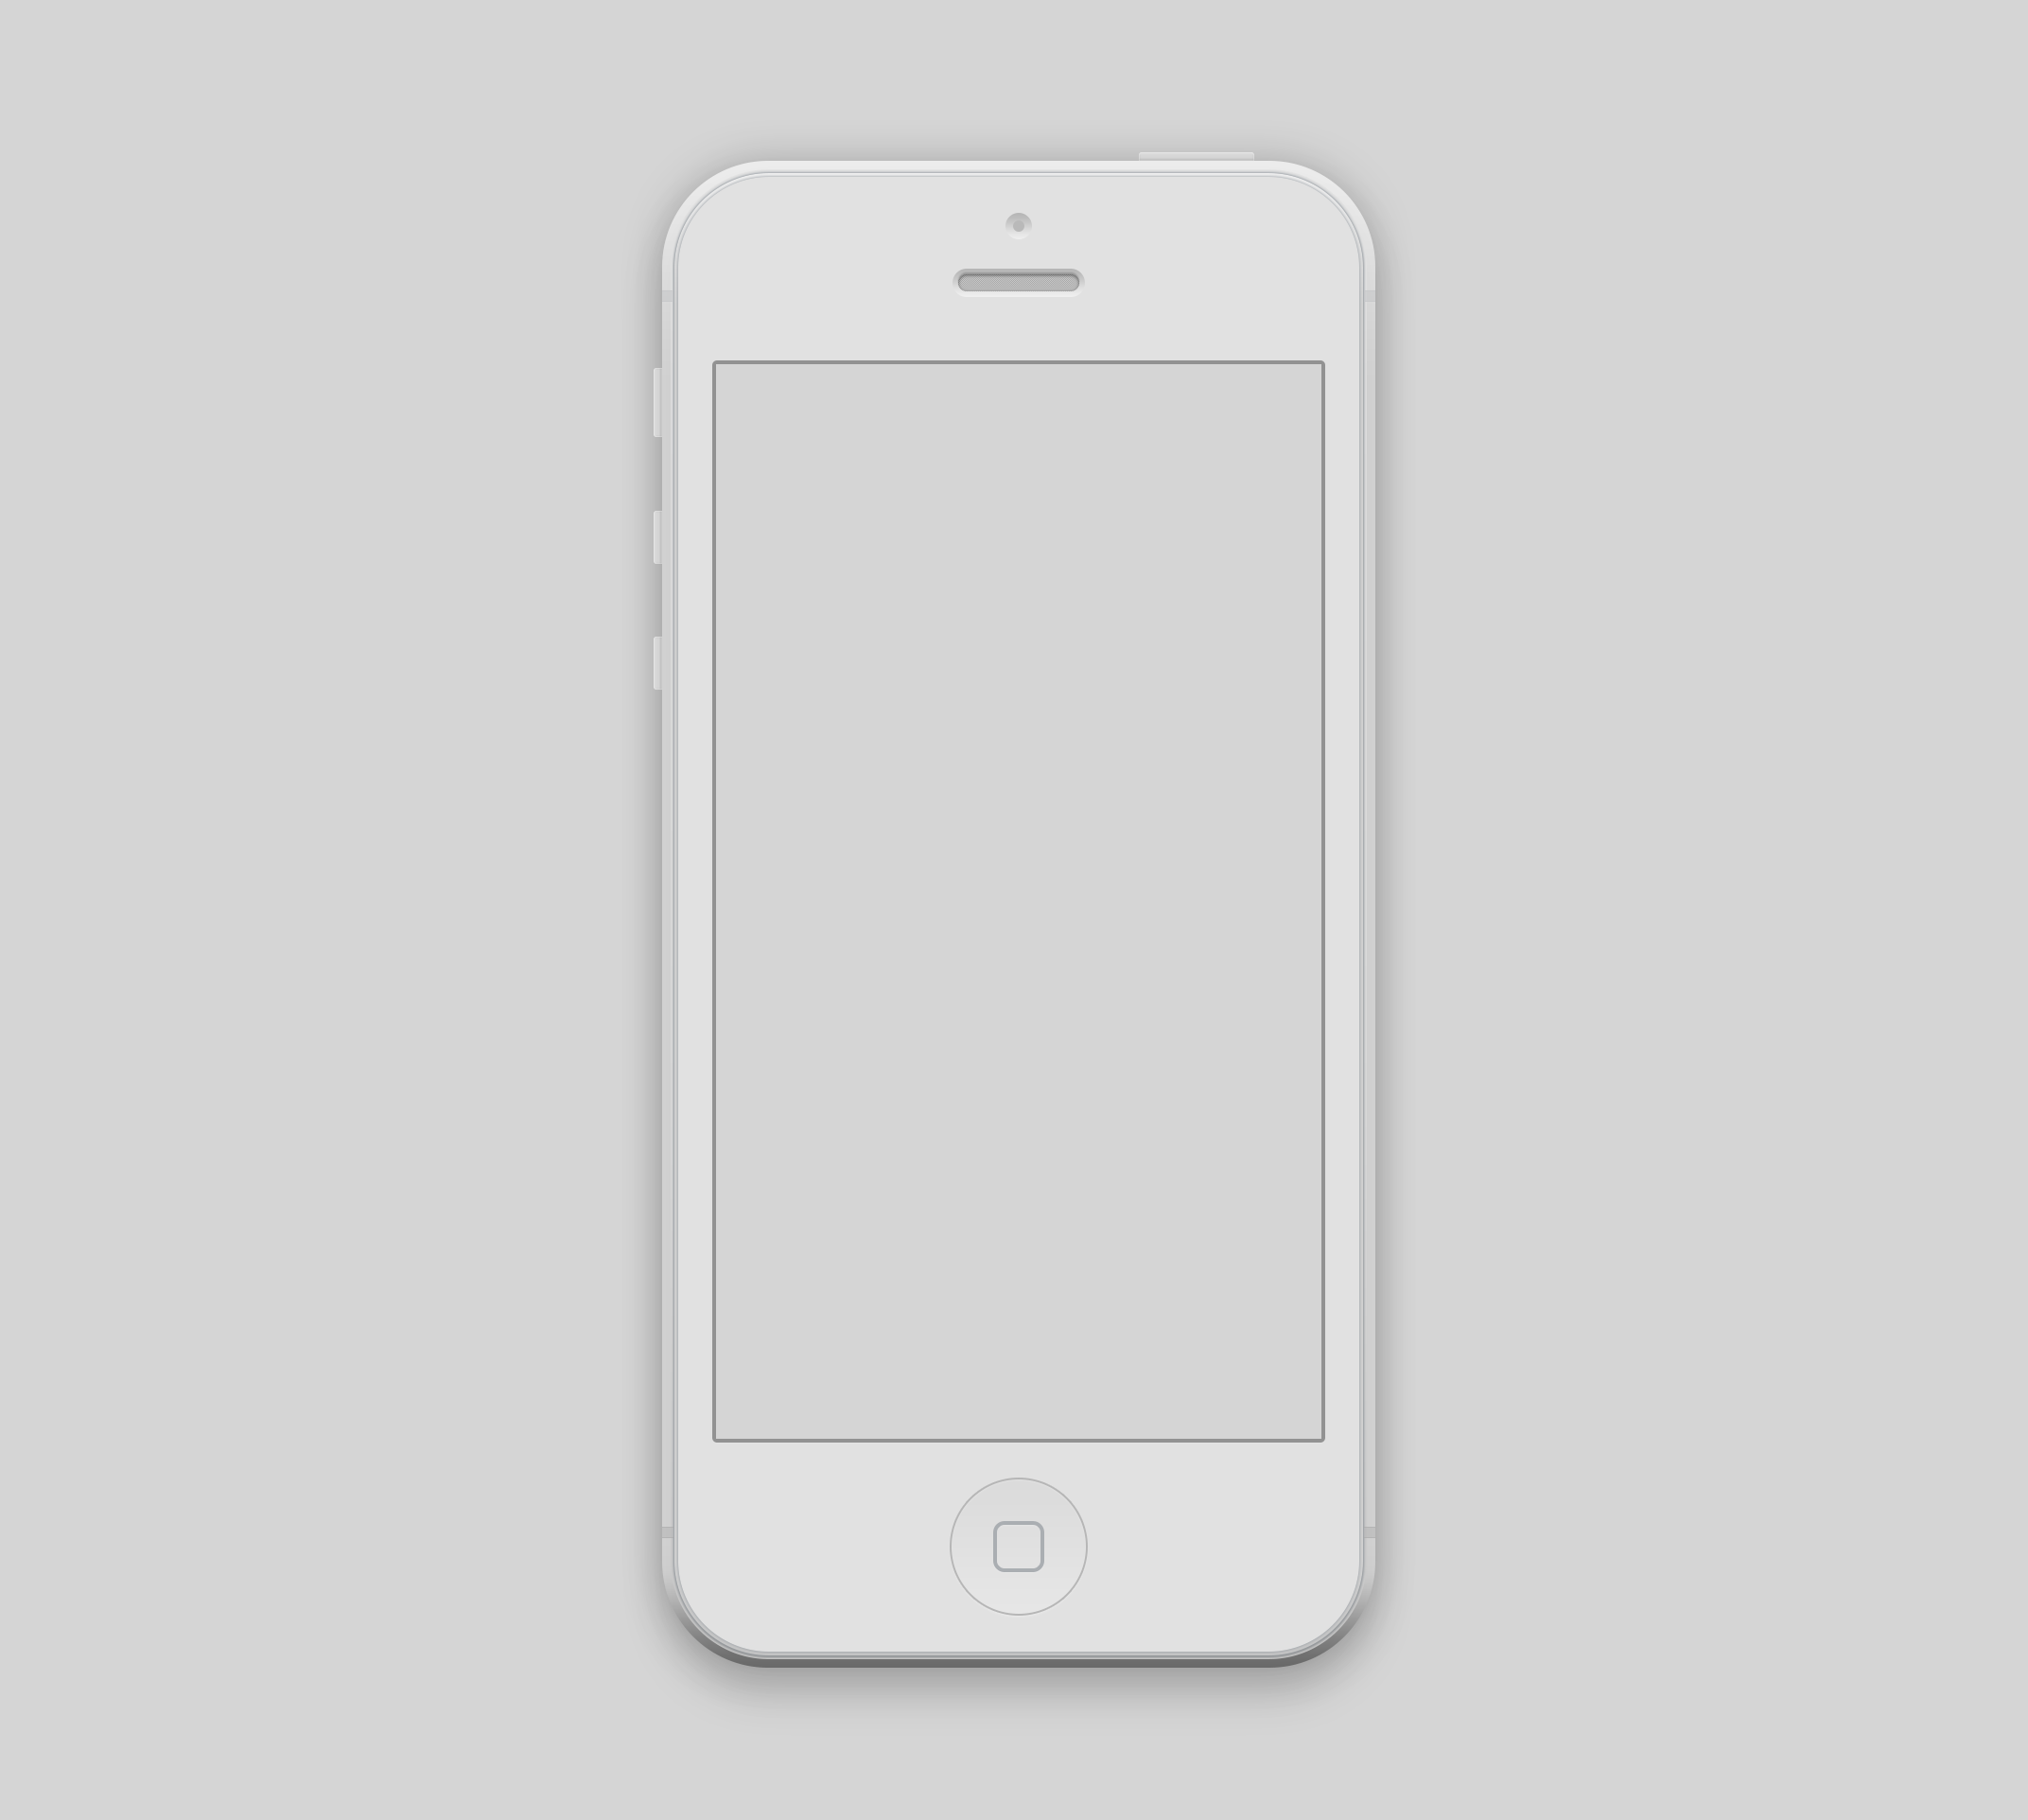 10 IPhone 5 Mockup Psd Free Images